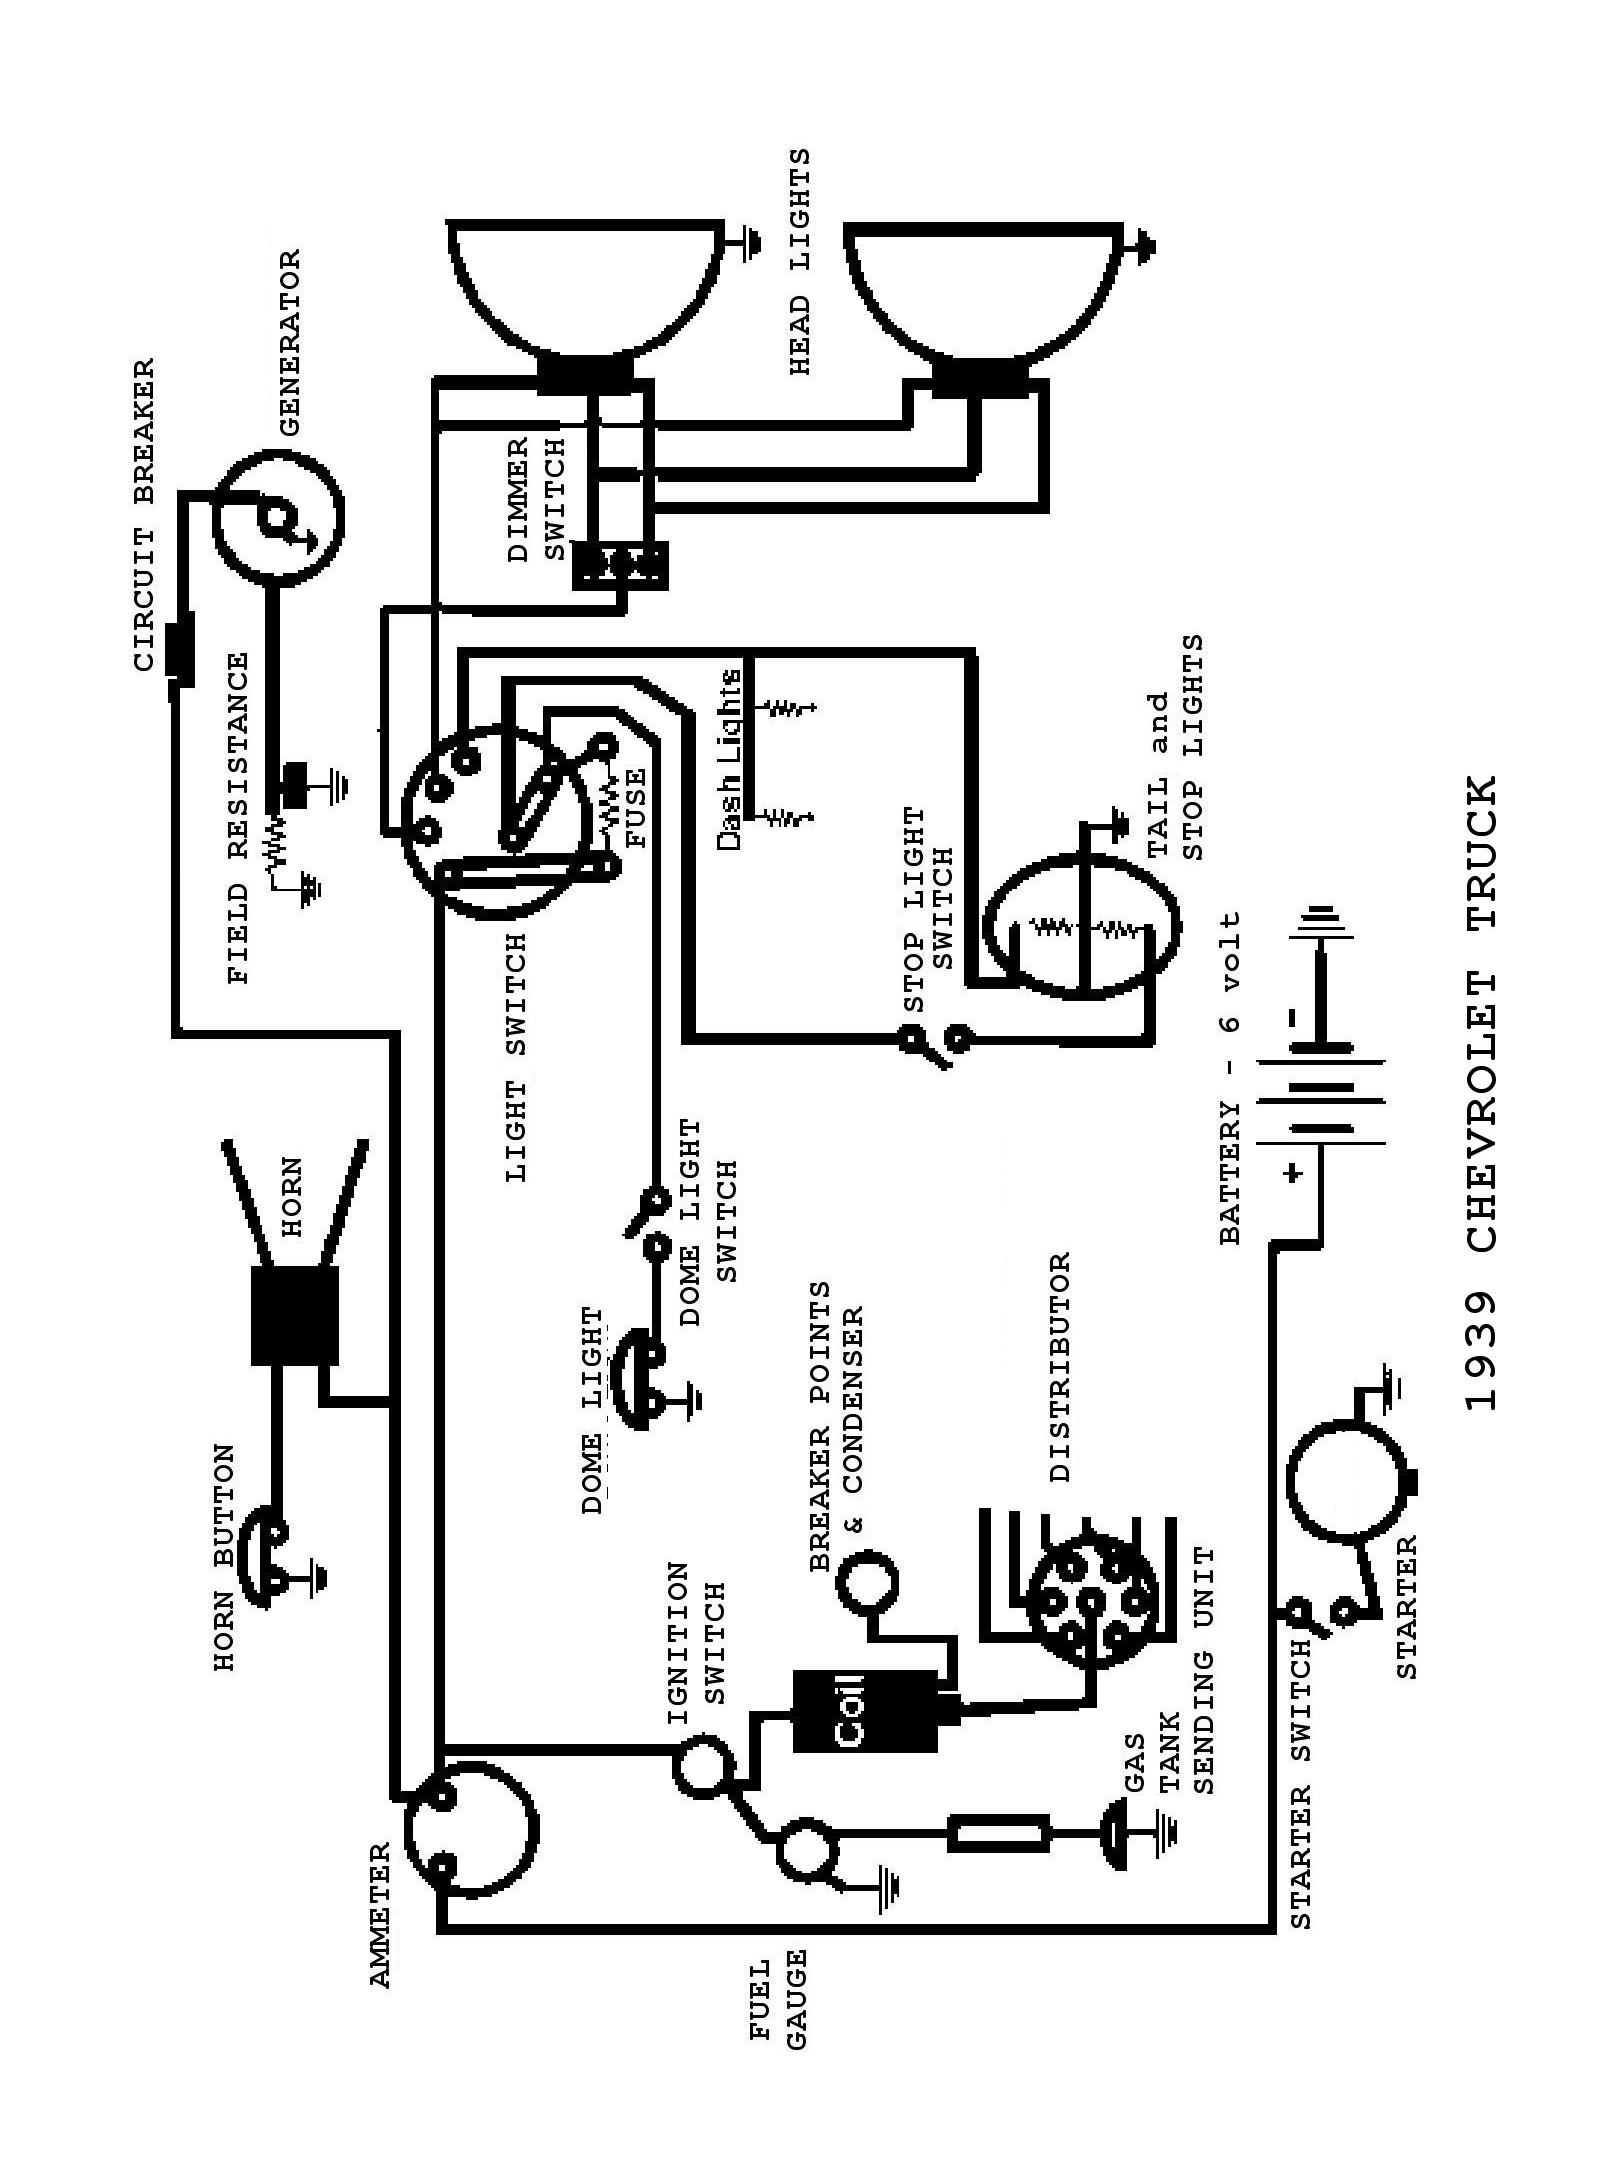 39truck 1931 chevrolet wiring diagram wiring diagram simonand 66 Chevy Headlight Switch Wiring Diagram at reclaimingppi.co